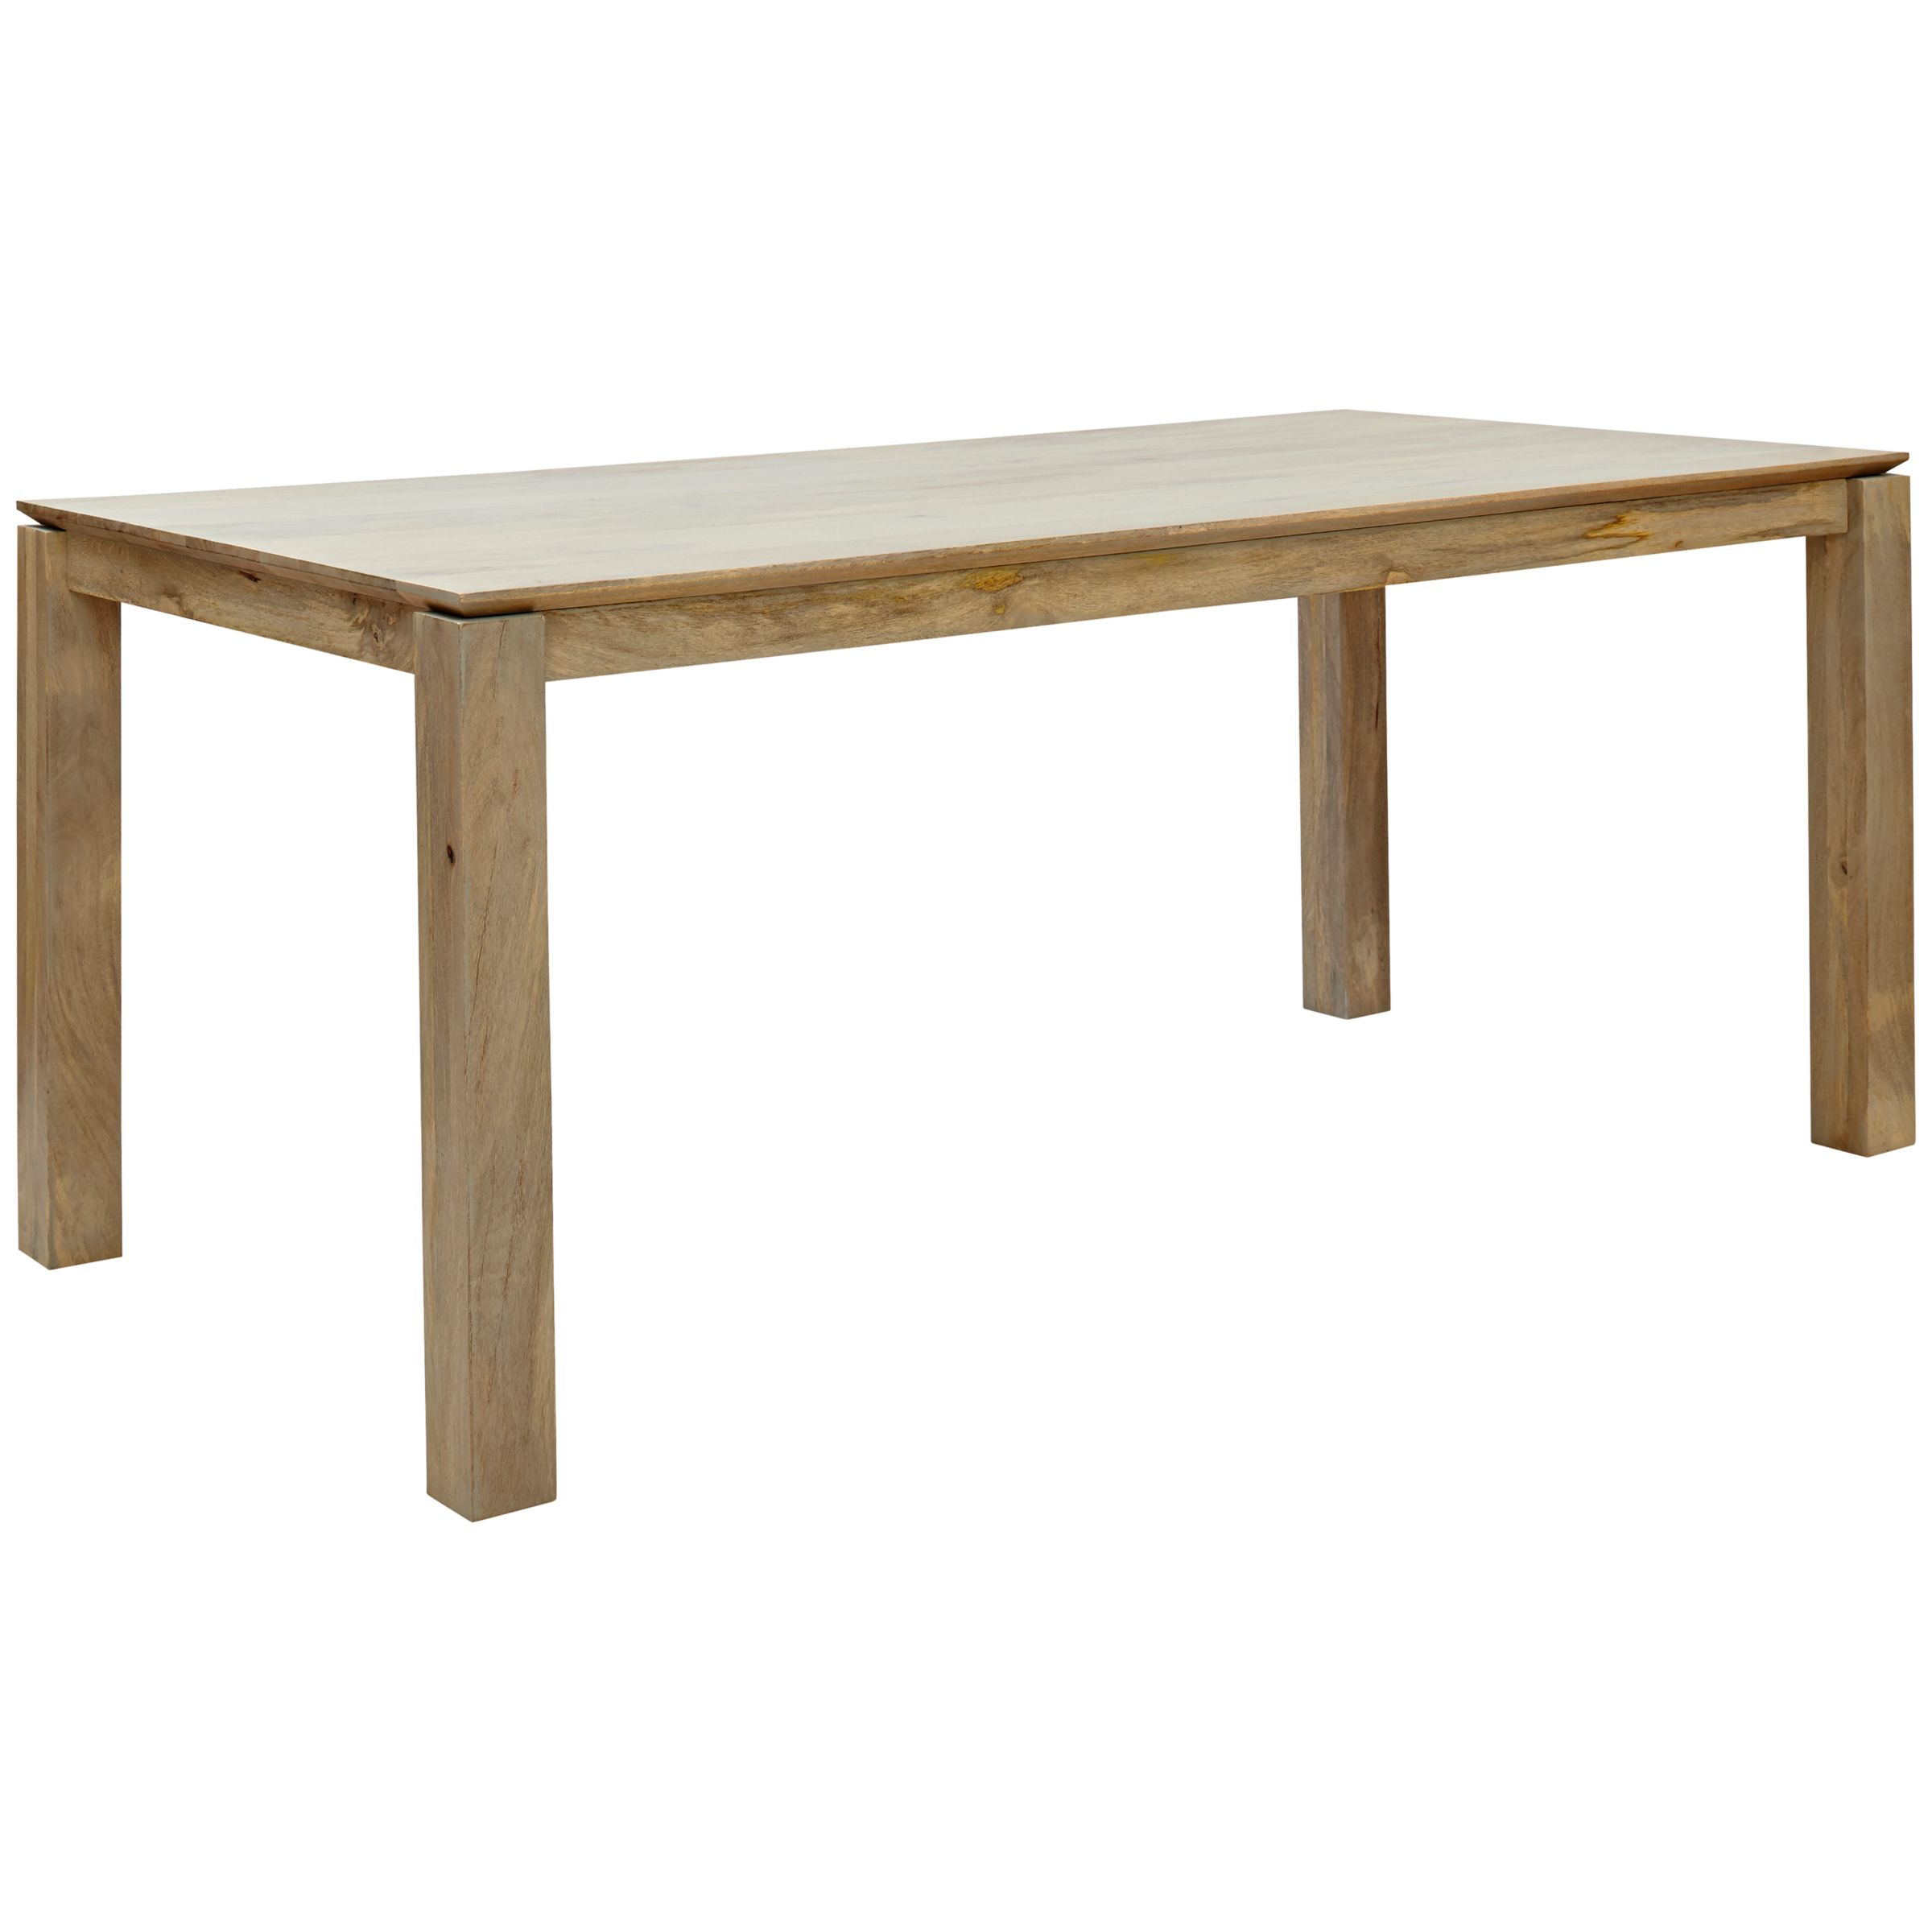 John Lewis Kitchen Furniture John Lewis Asha Wooden 6 8 Seater Dining Table At John Lewis